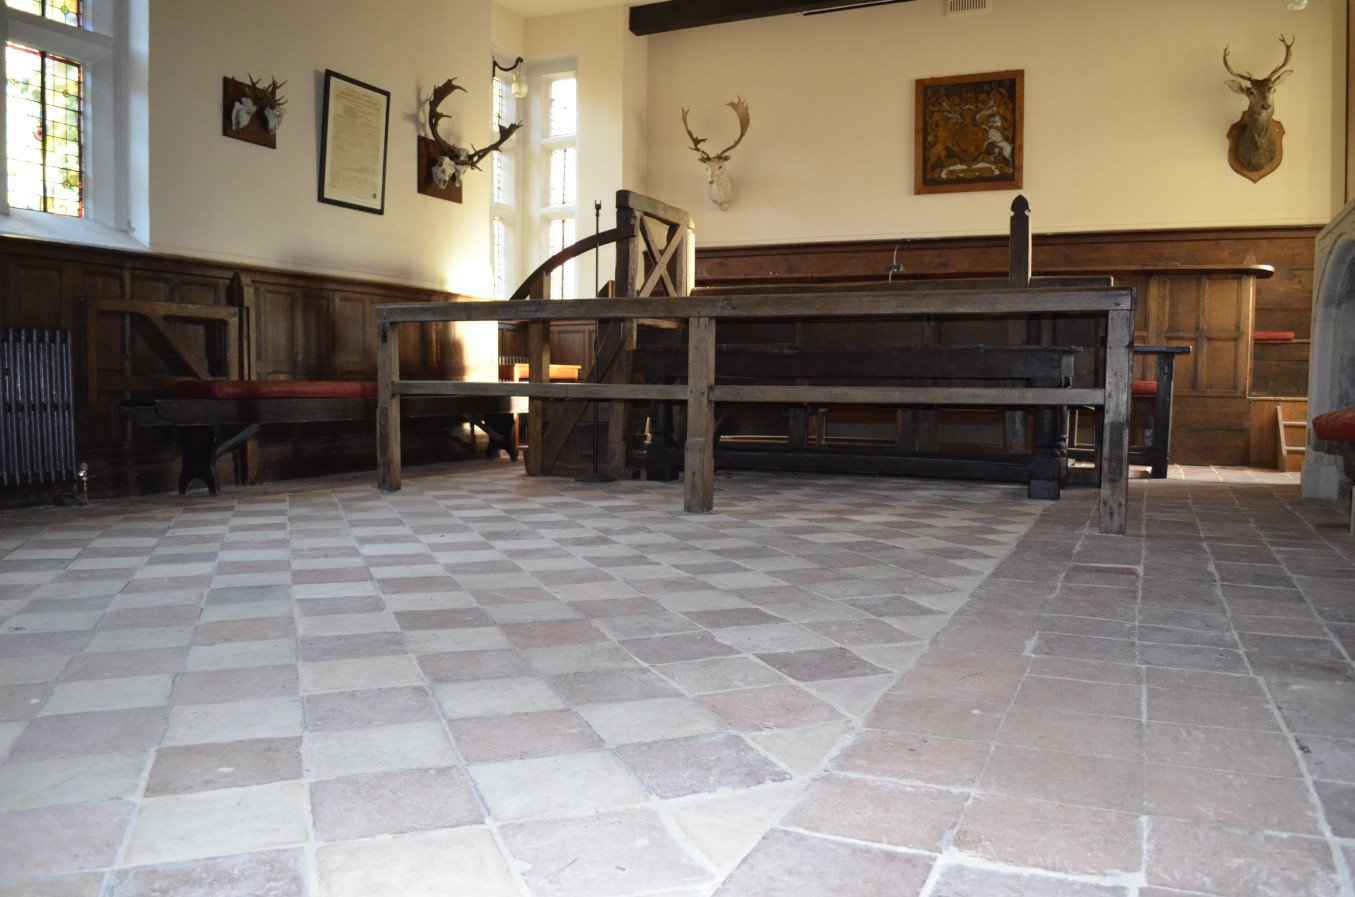 Verderers Hall after restoration work to the floor